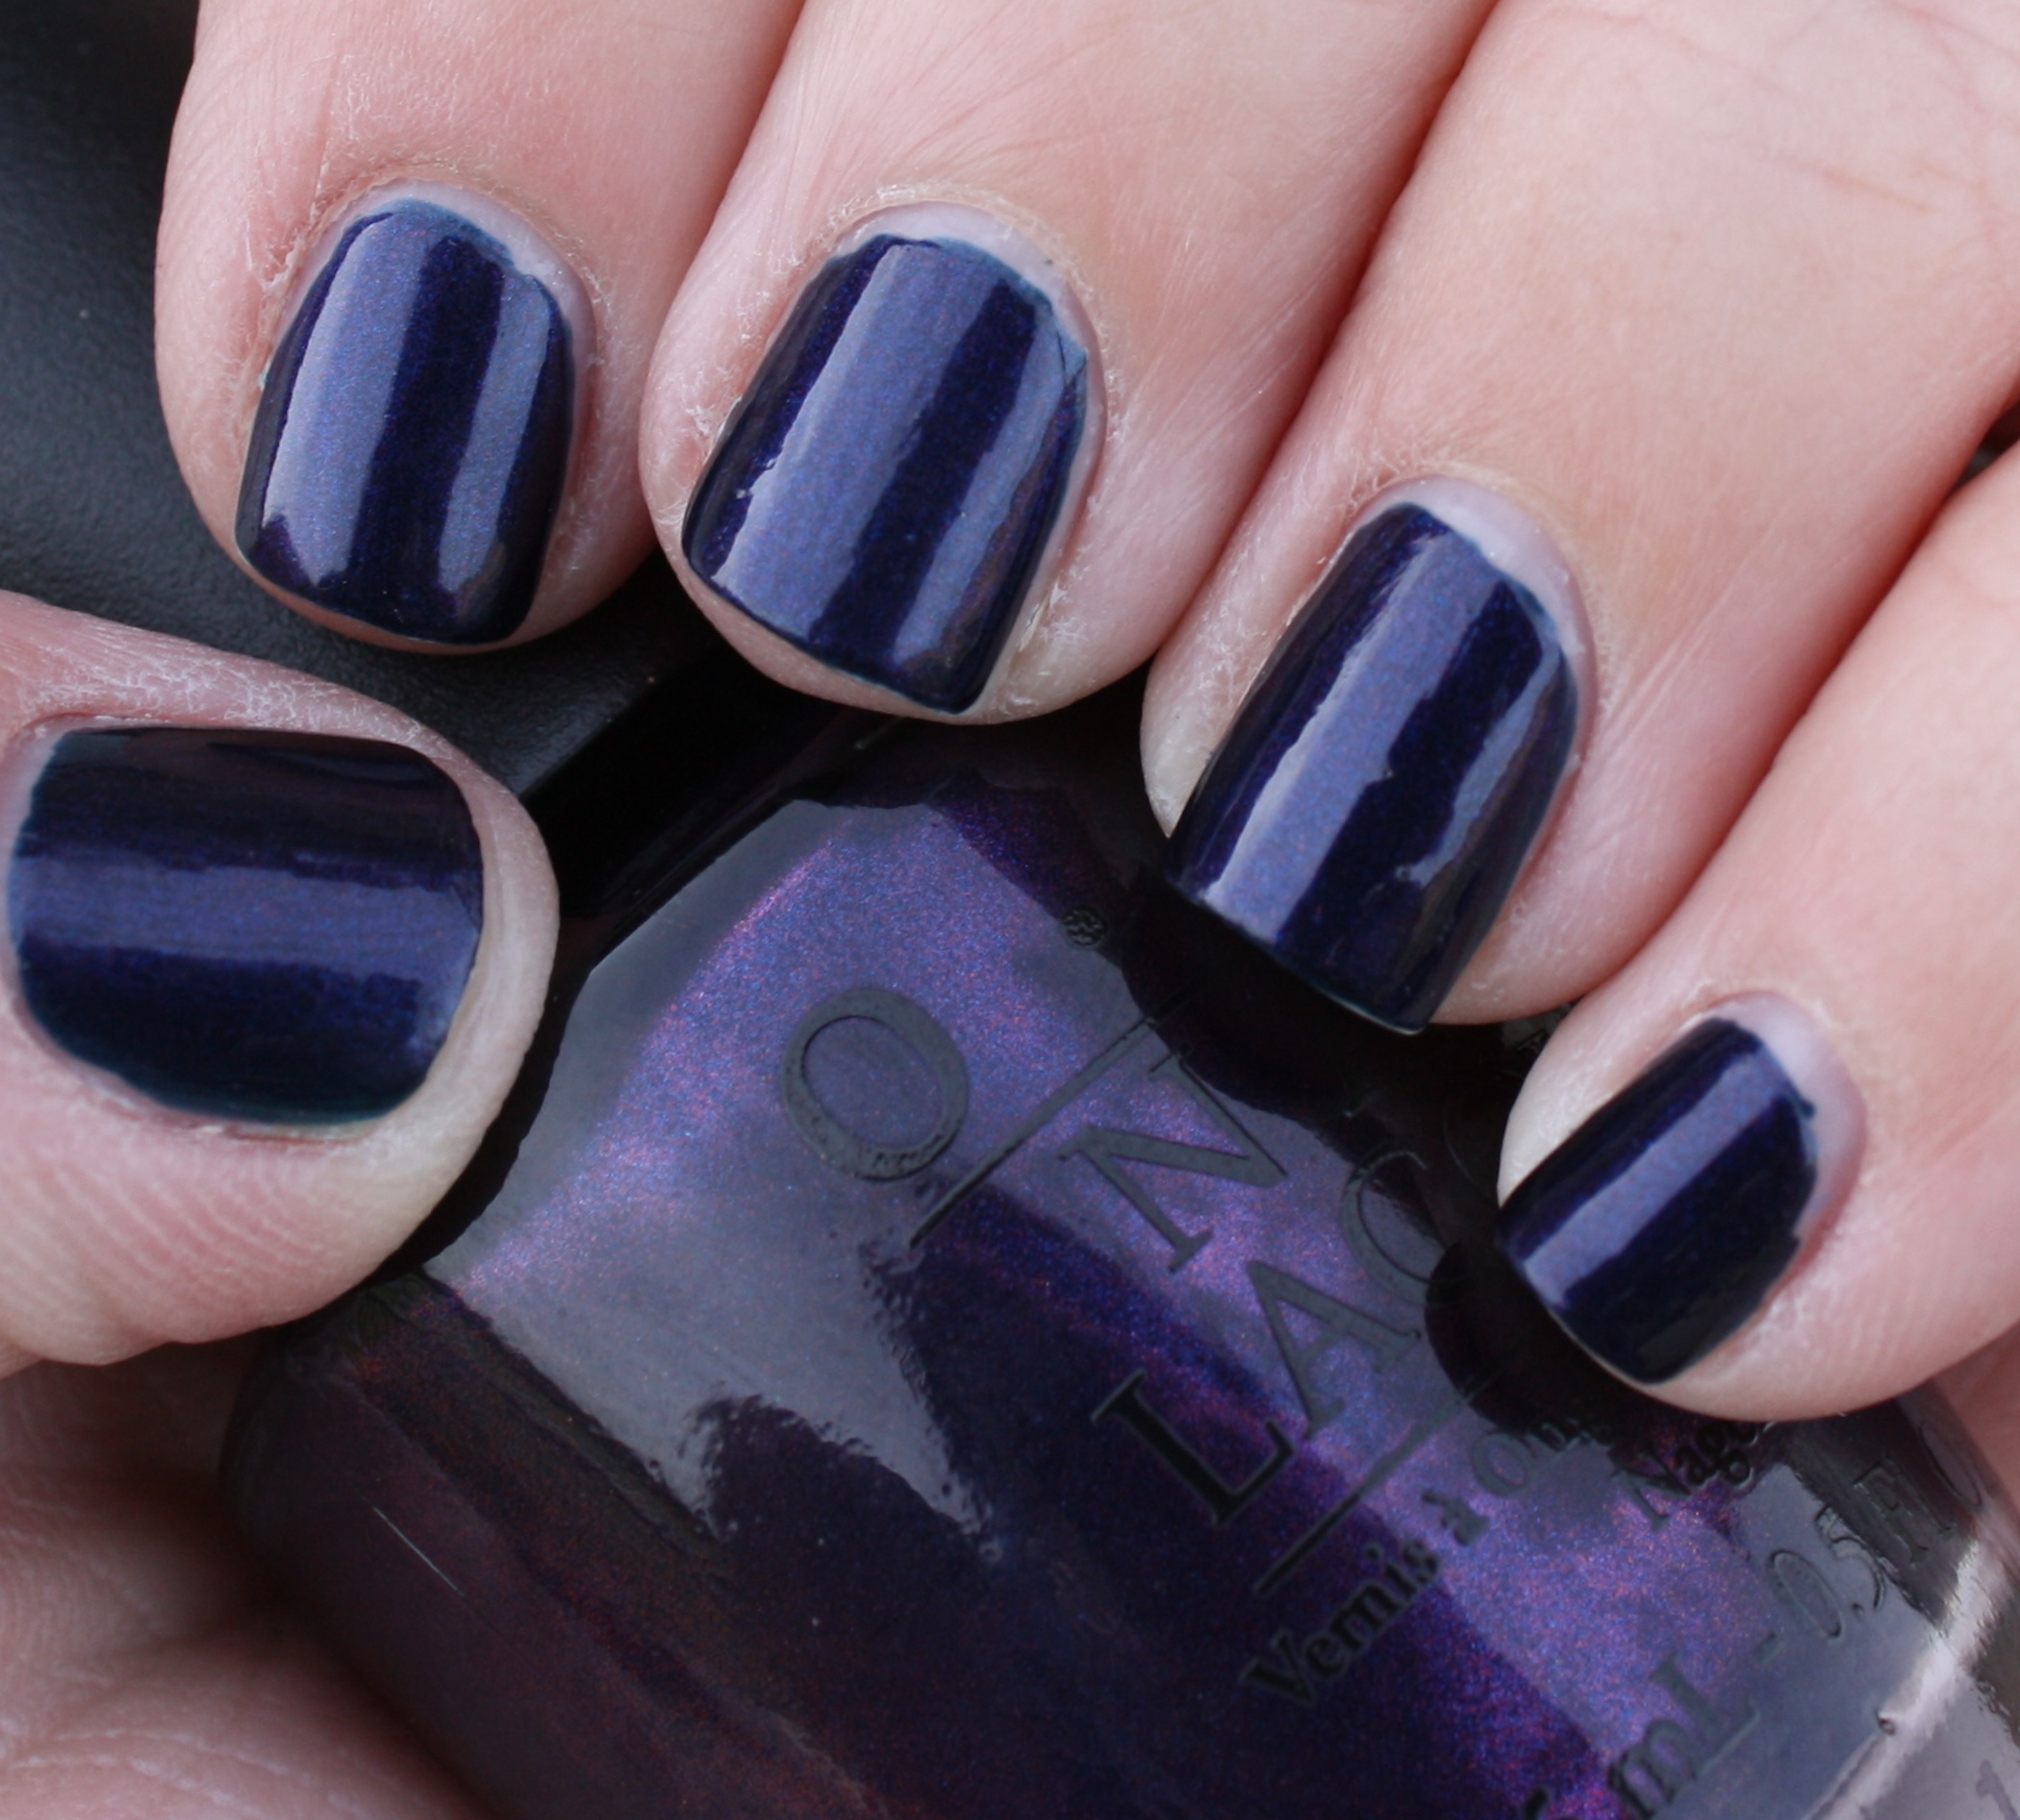 OPI Russian Navy – horrendous color